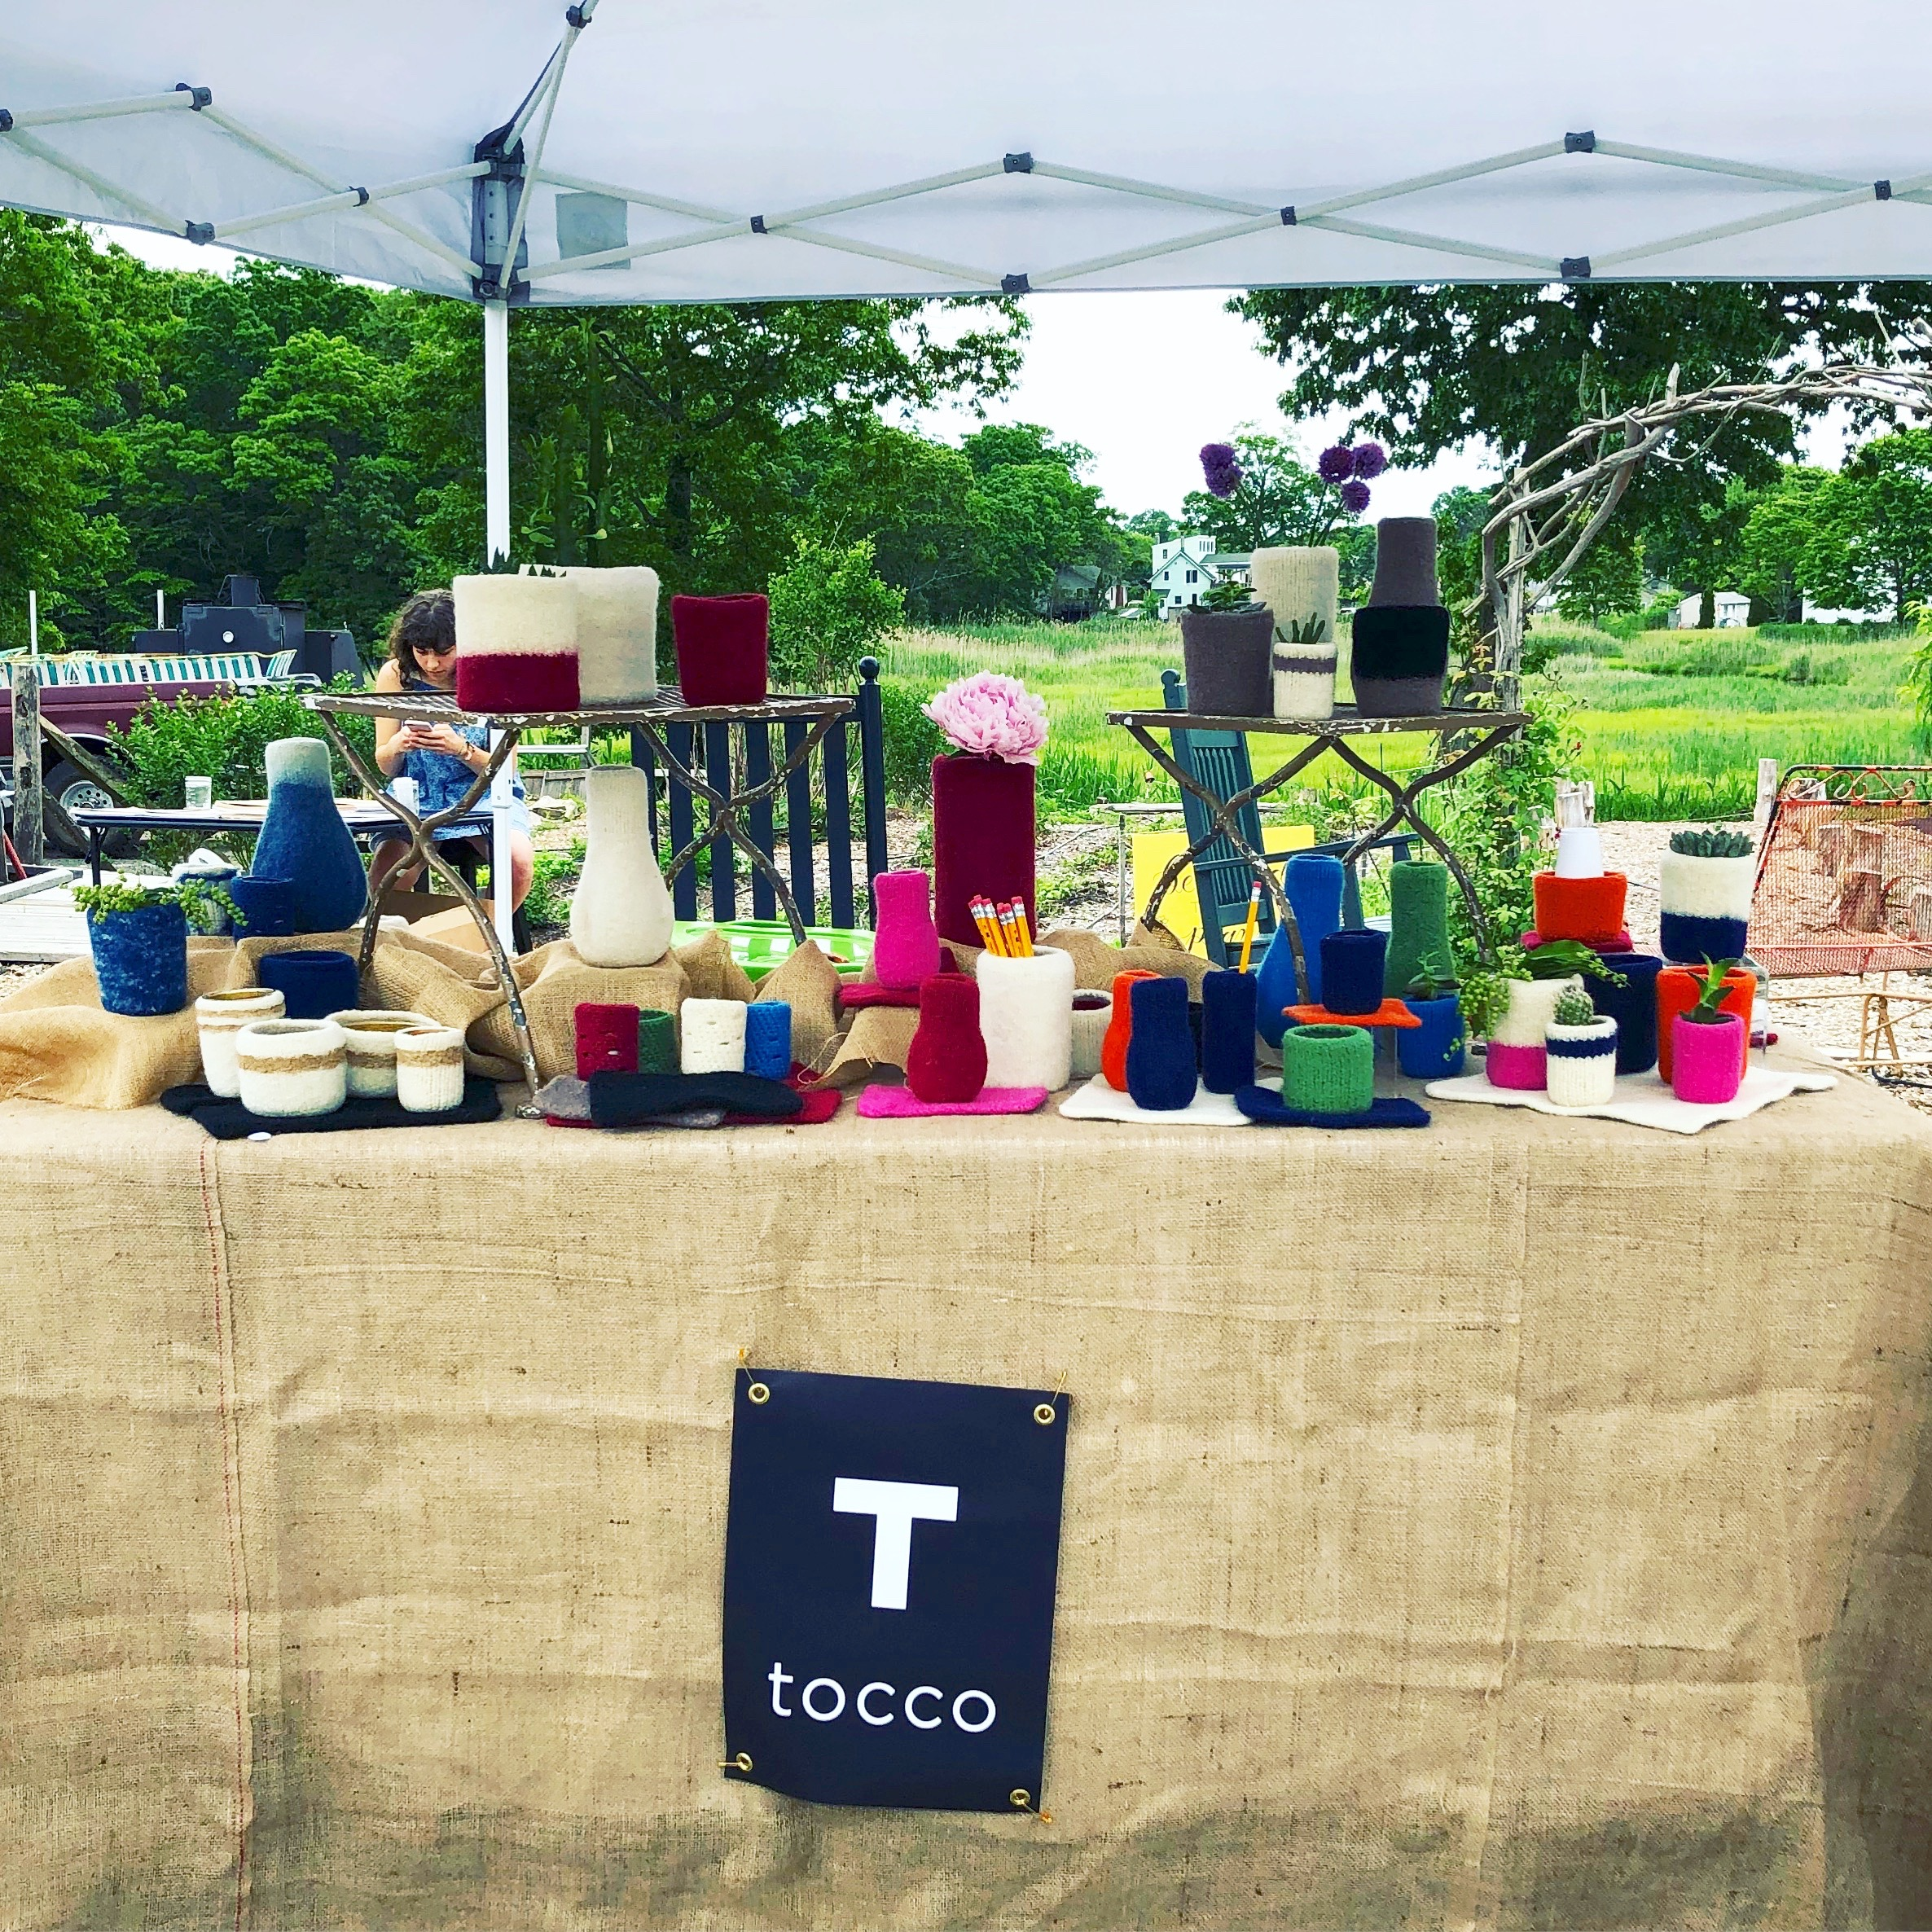 I'll be at  The Stand  in Branford this Sunday July 1 from 9 am - 1 pm. They have invited a few select vendors to show their wares on Sundays throughout the summer during their brunch and lunch service. I will post on  my facebook page  by the Friday of that week if I will be setting up that Sunday. Have you experienced The Standwich? It is not to be missed!